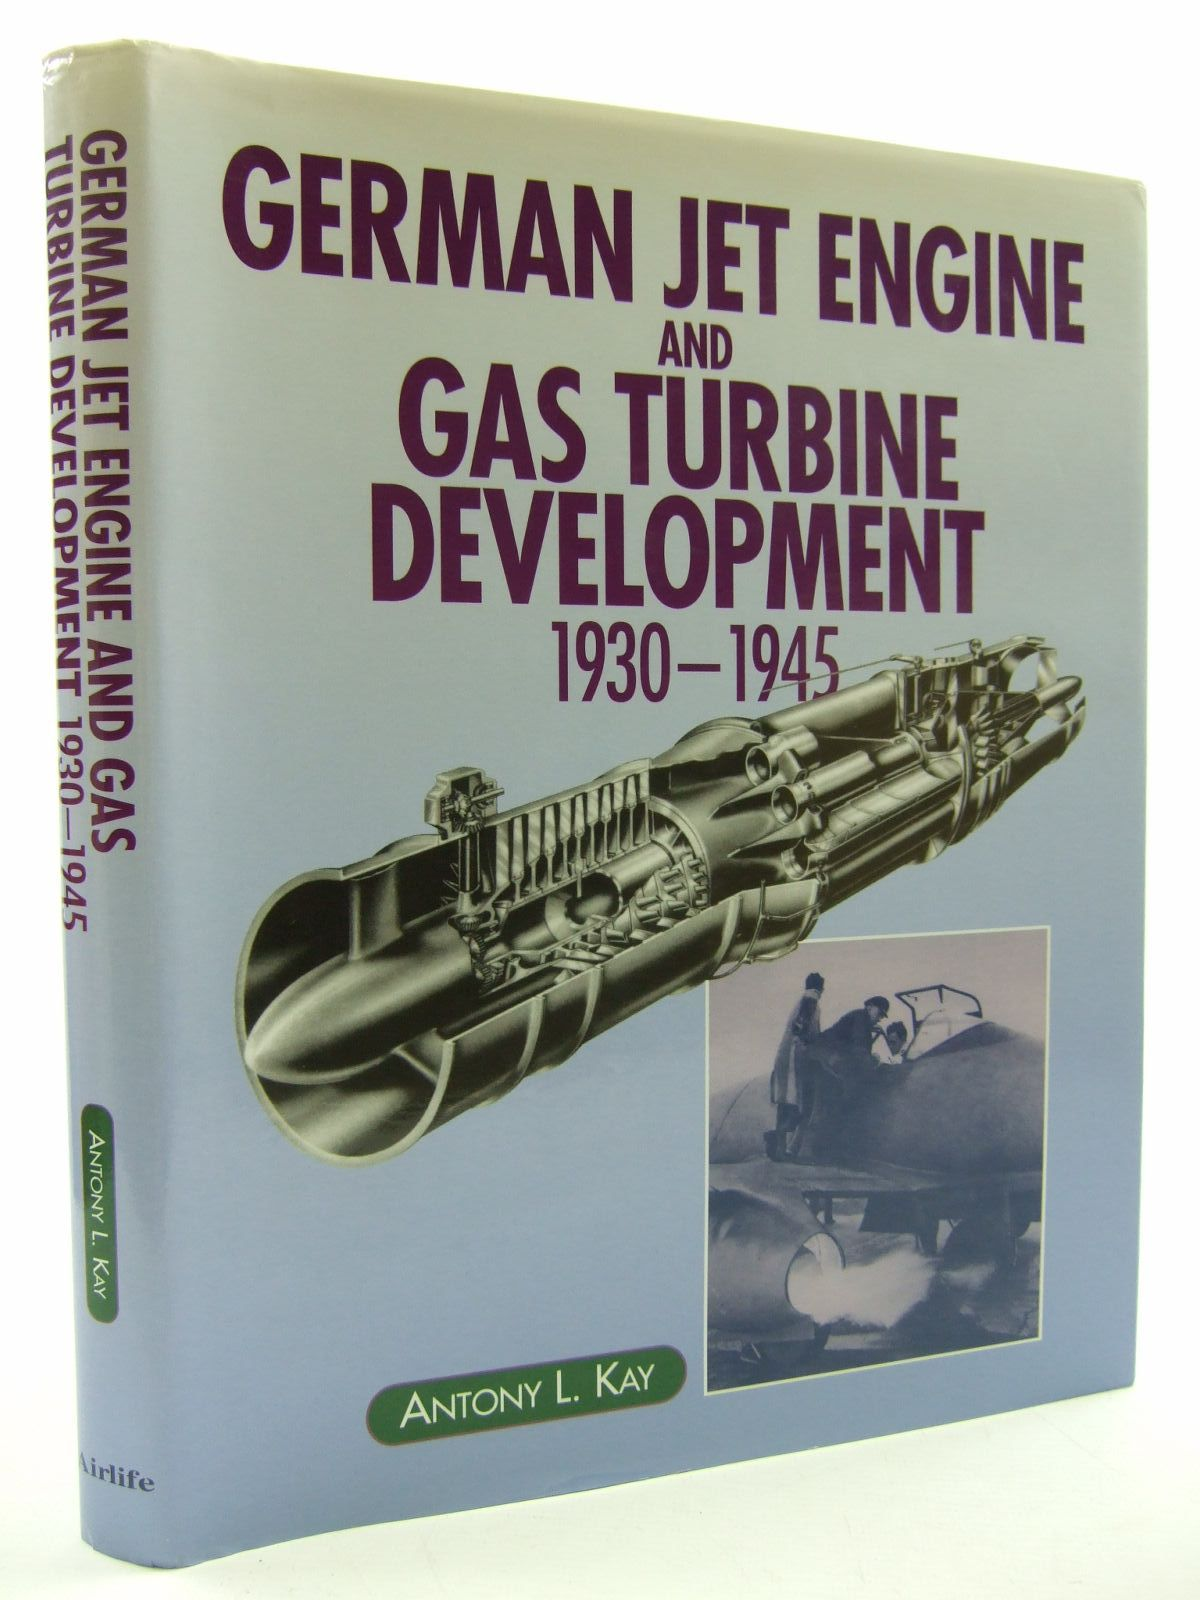 GERMAN JET ENGINE AND GAS TURBINE DEVELOPMENT 1930 1945 written by